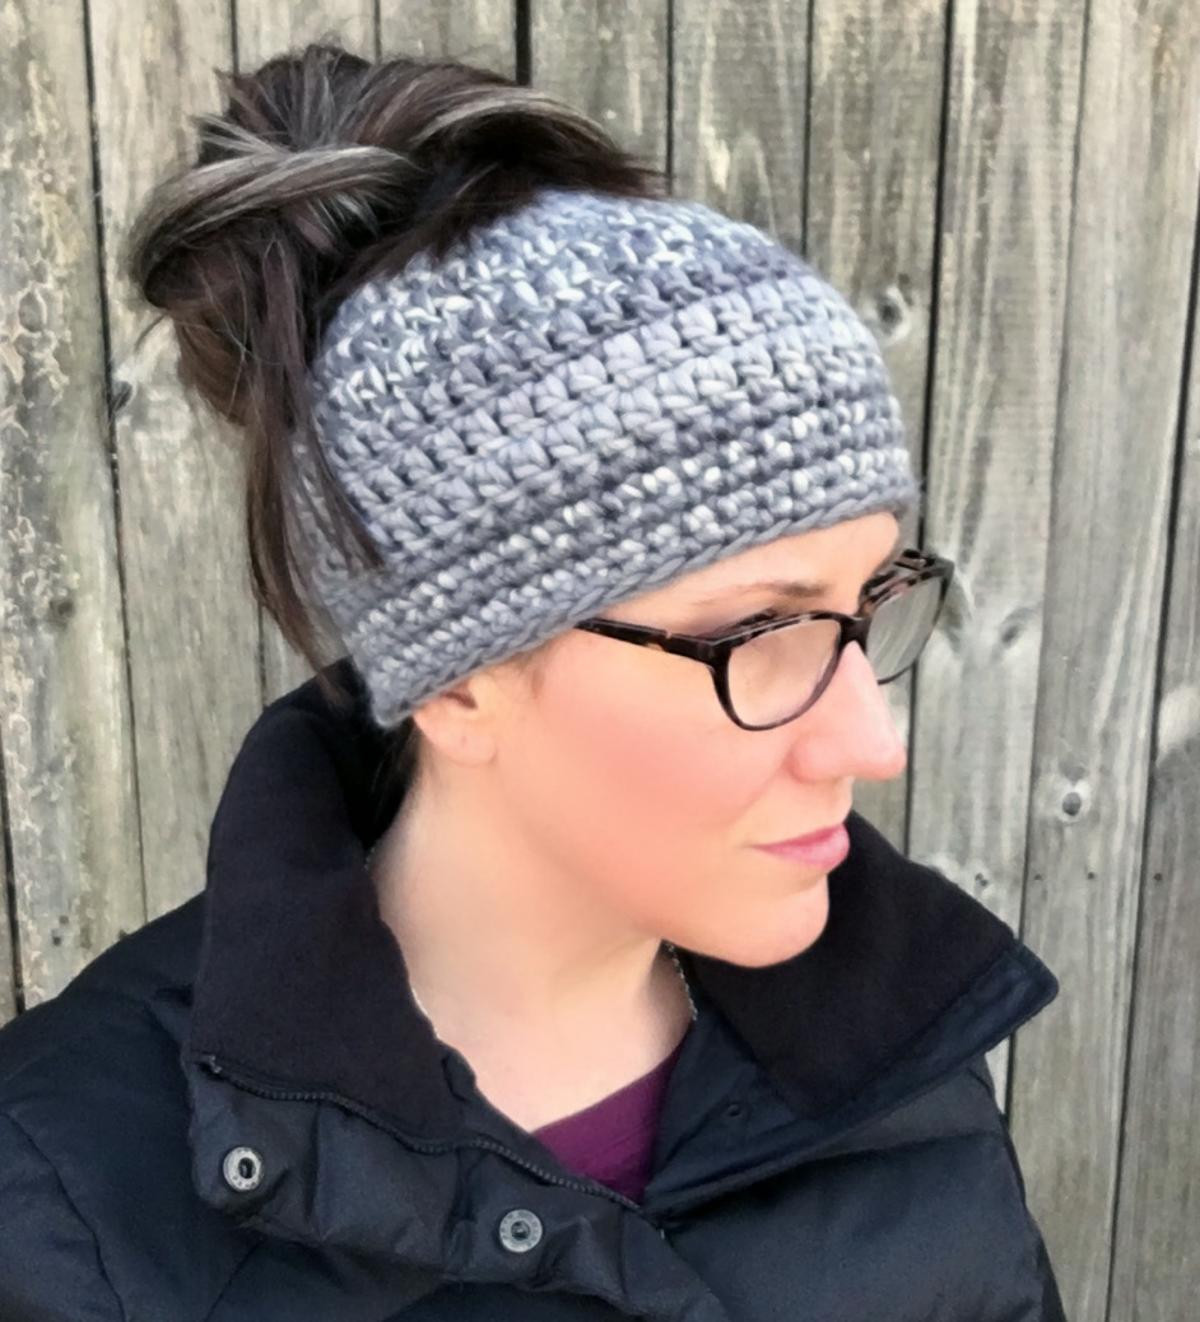 Crochet Messy Bun Beanie Best Of Messy Bun Beanie Crochet Of New 43 Photos Crochet Messy Bun Beanie